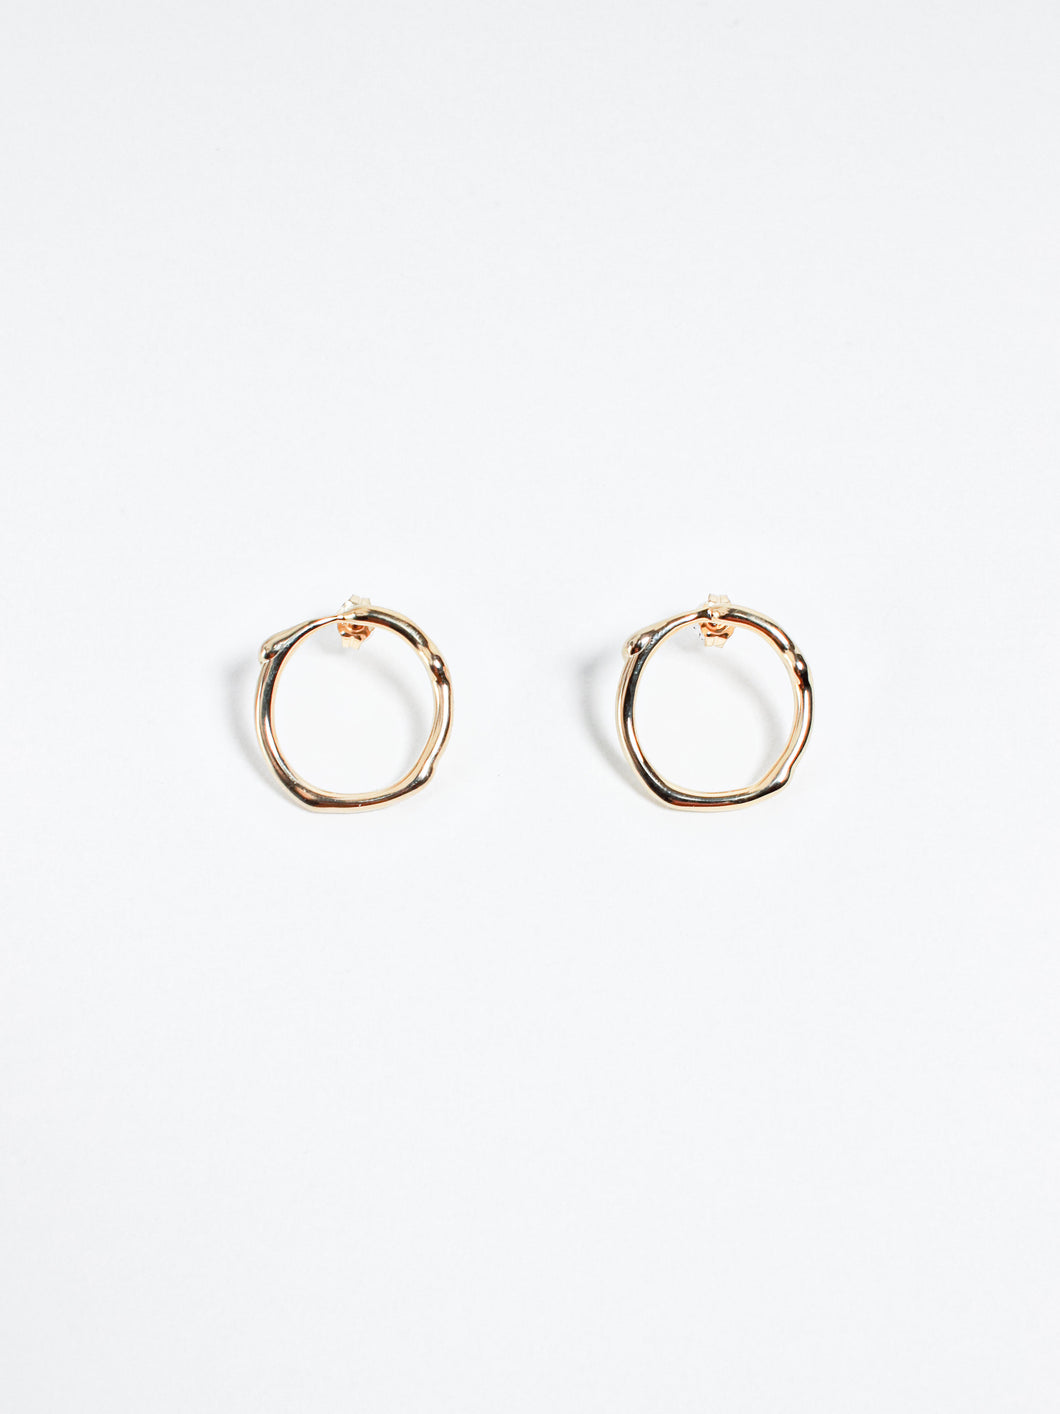 Cassini Minor Earrings